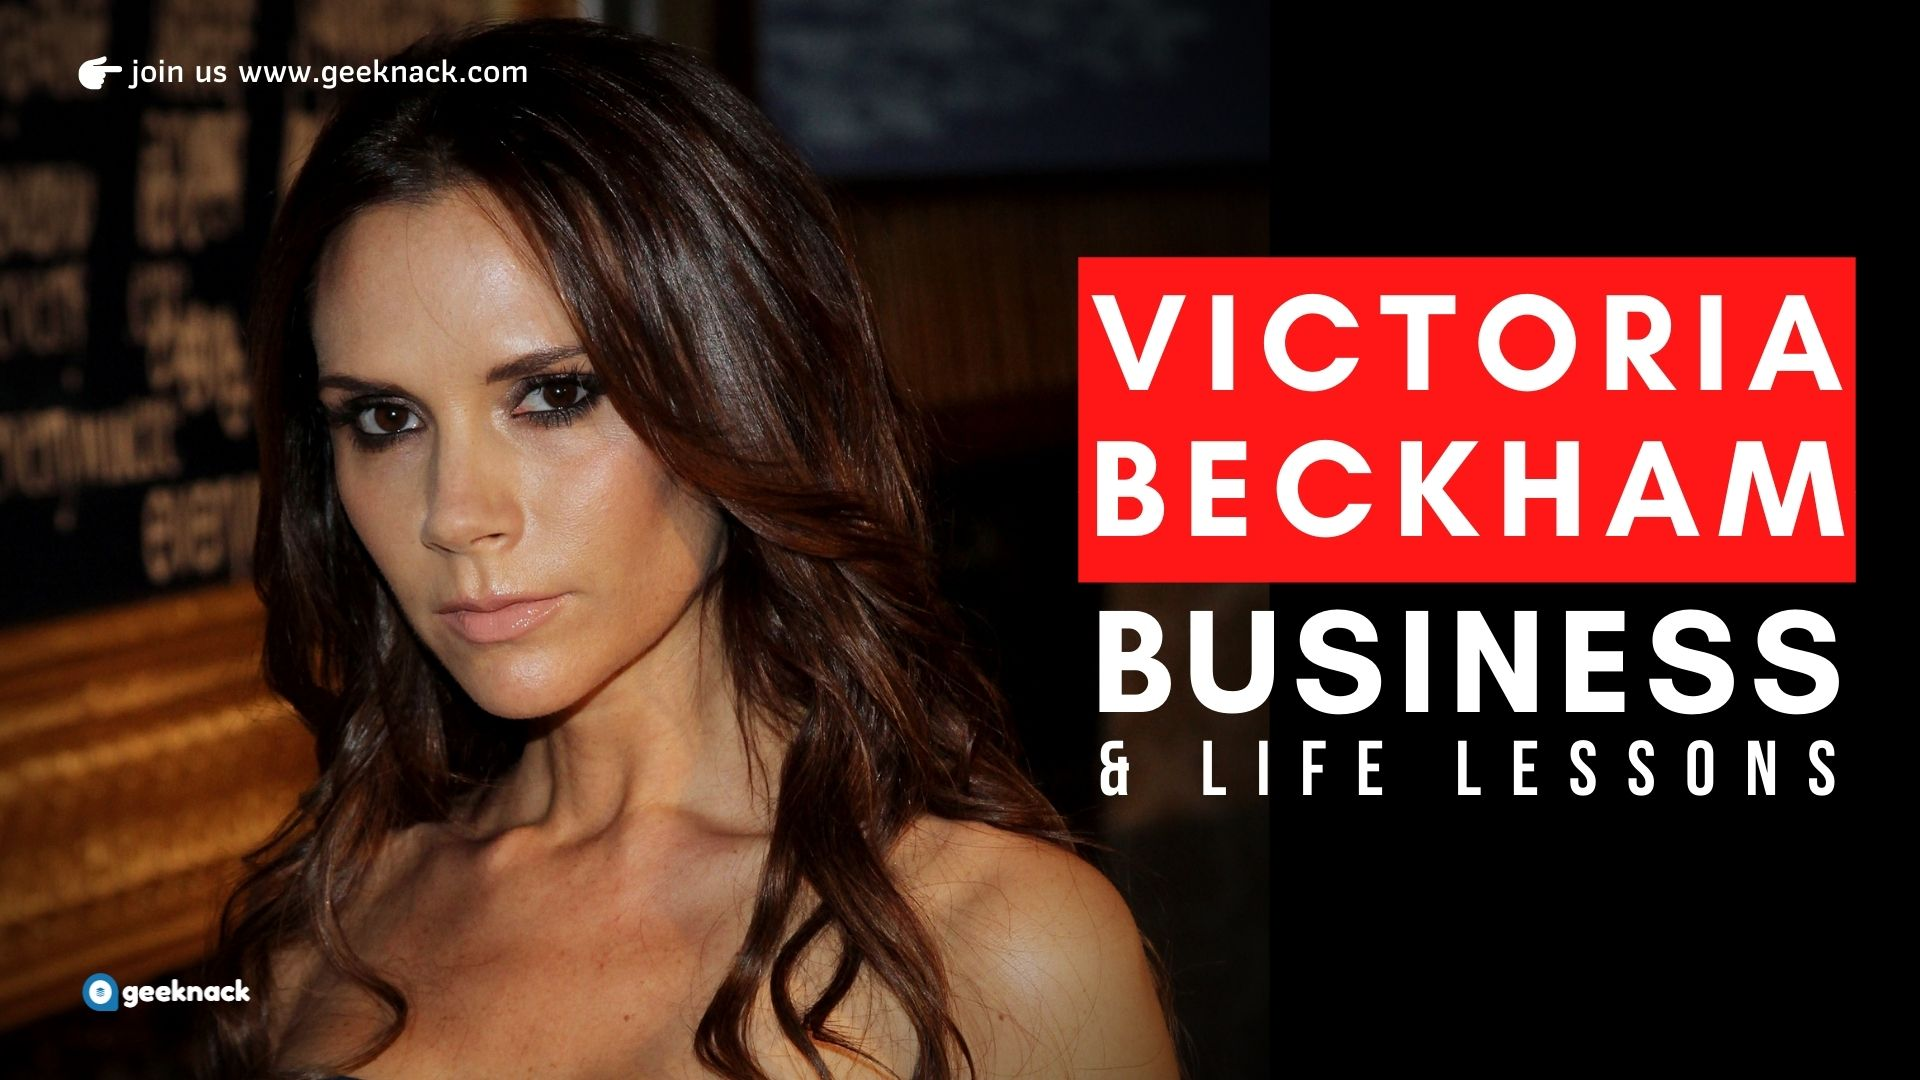 Victoria Beckham - Business & Life Lessons cover